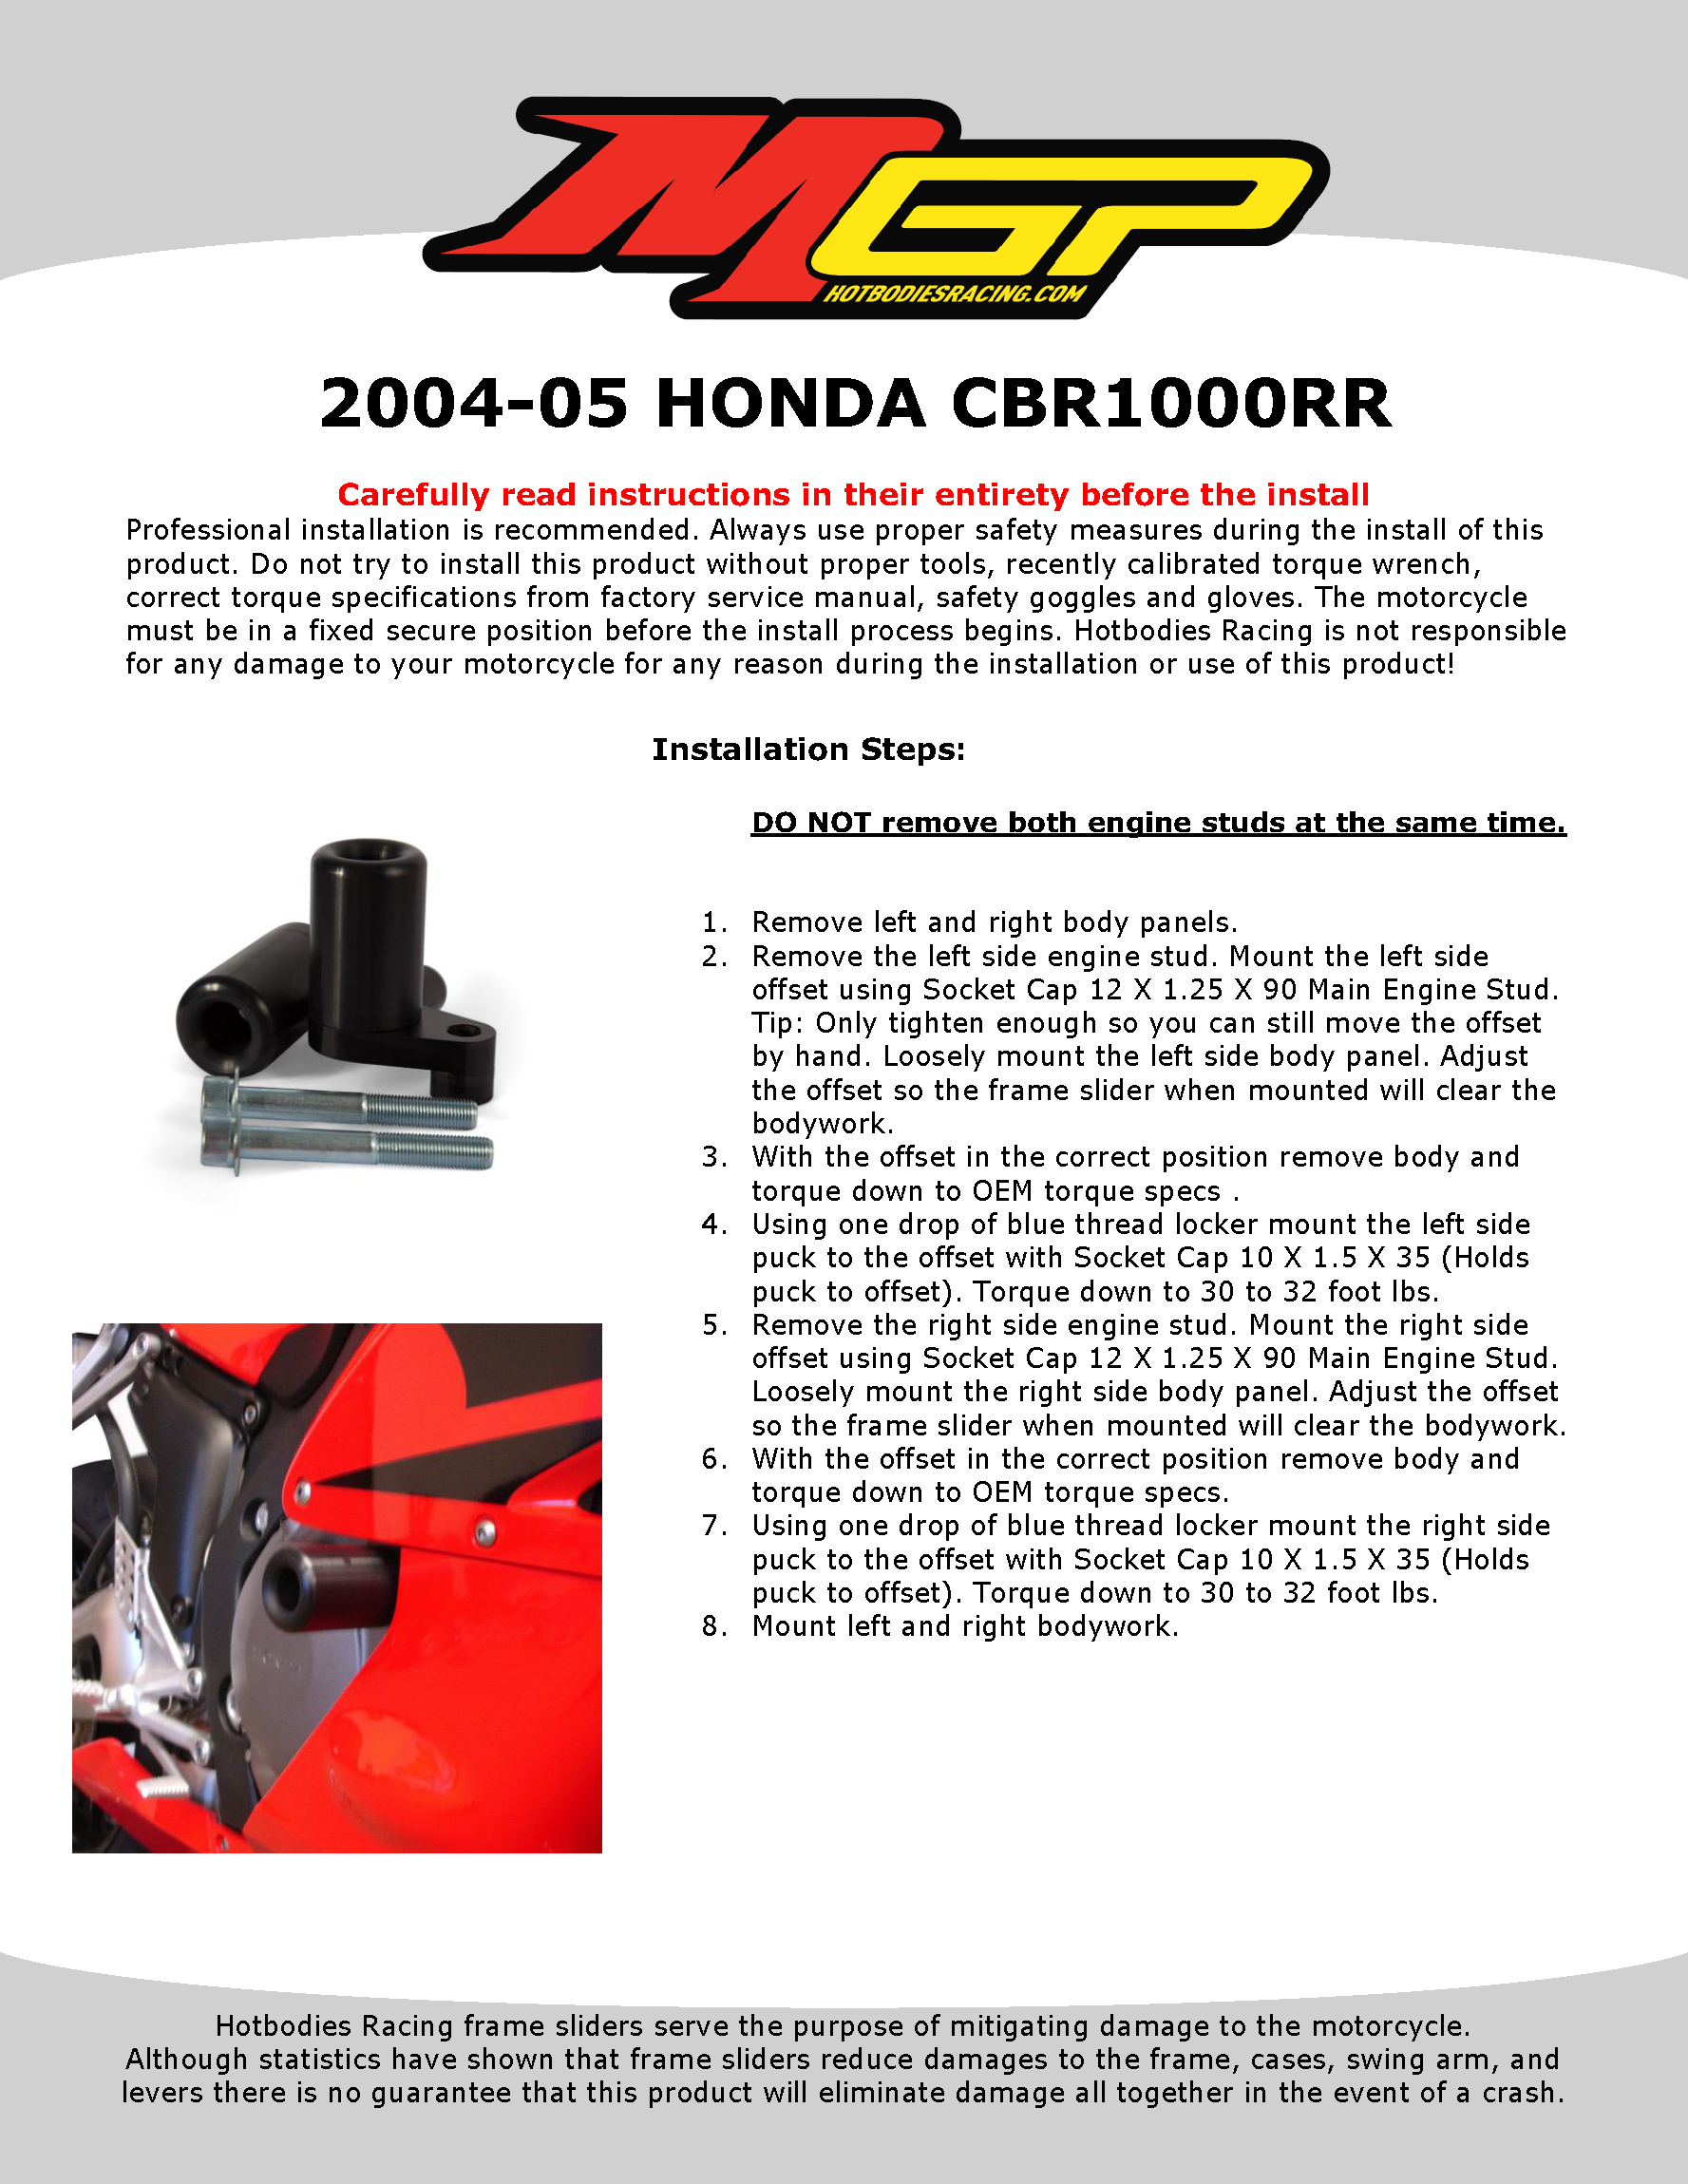 CBR1000RR 2004-05 NO CUT Frame Sliders